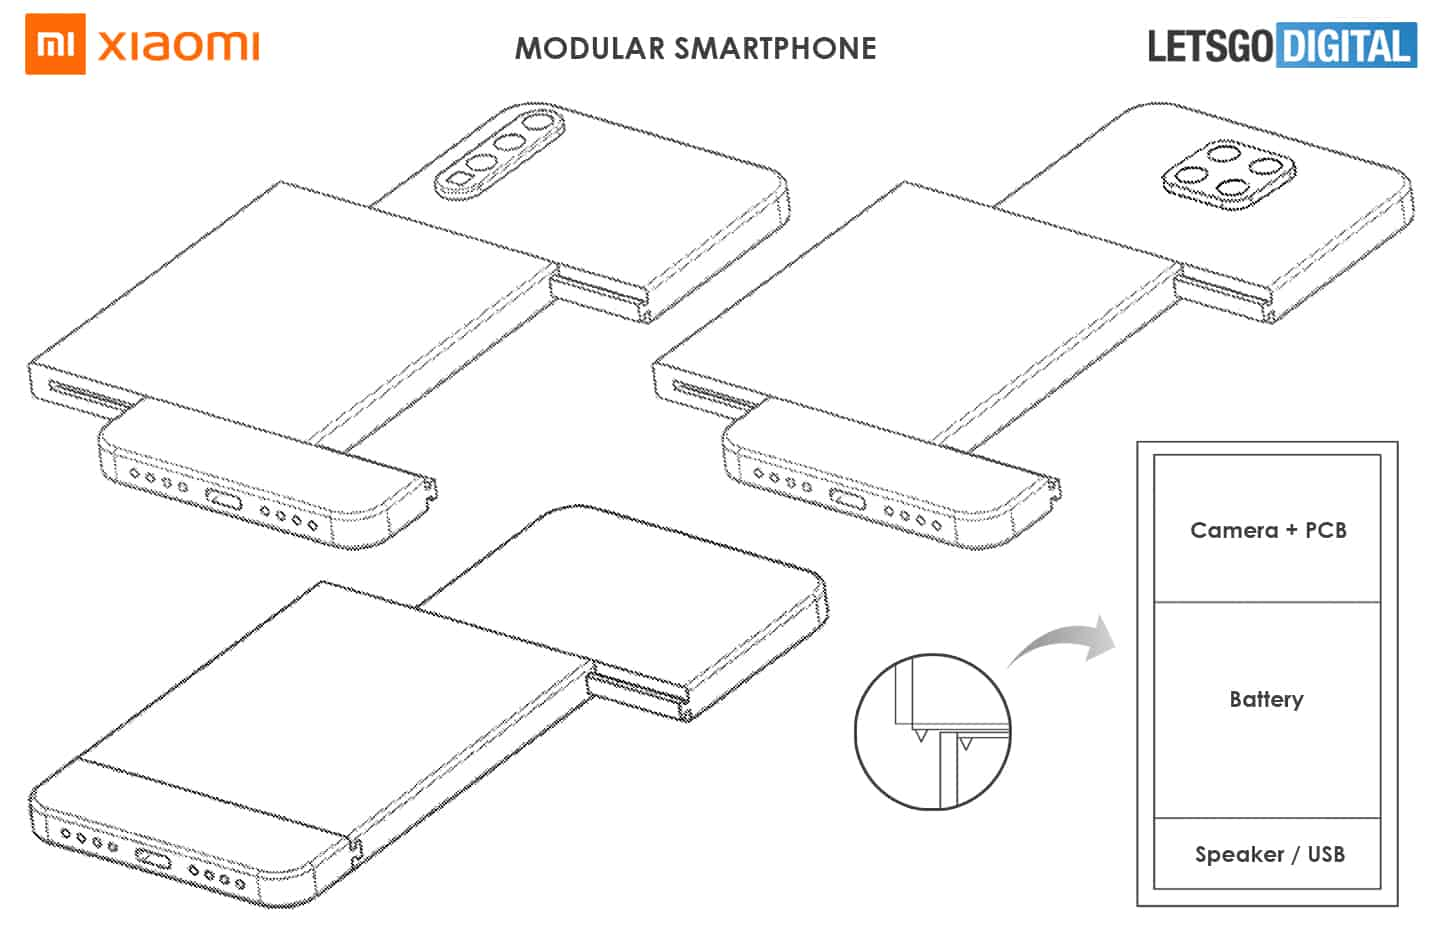 Xiaomi Patents Modular Smartphone With Dual Side Slider